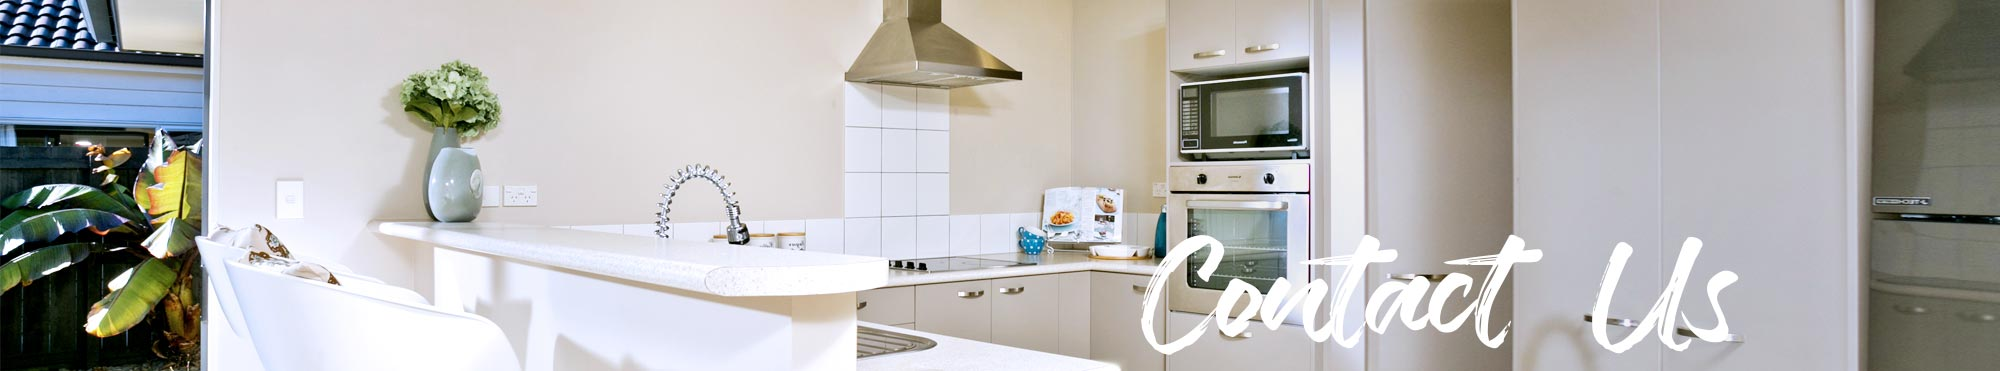 contact-us, Kitchen Renovation, Bathroom Renovation, House Renovation Auckland